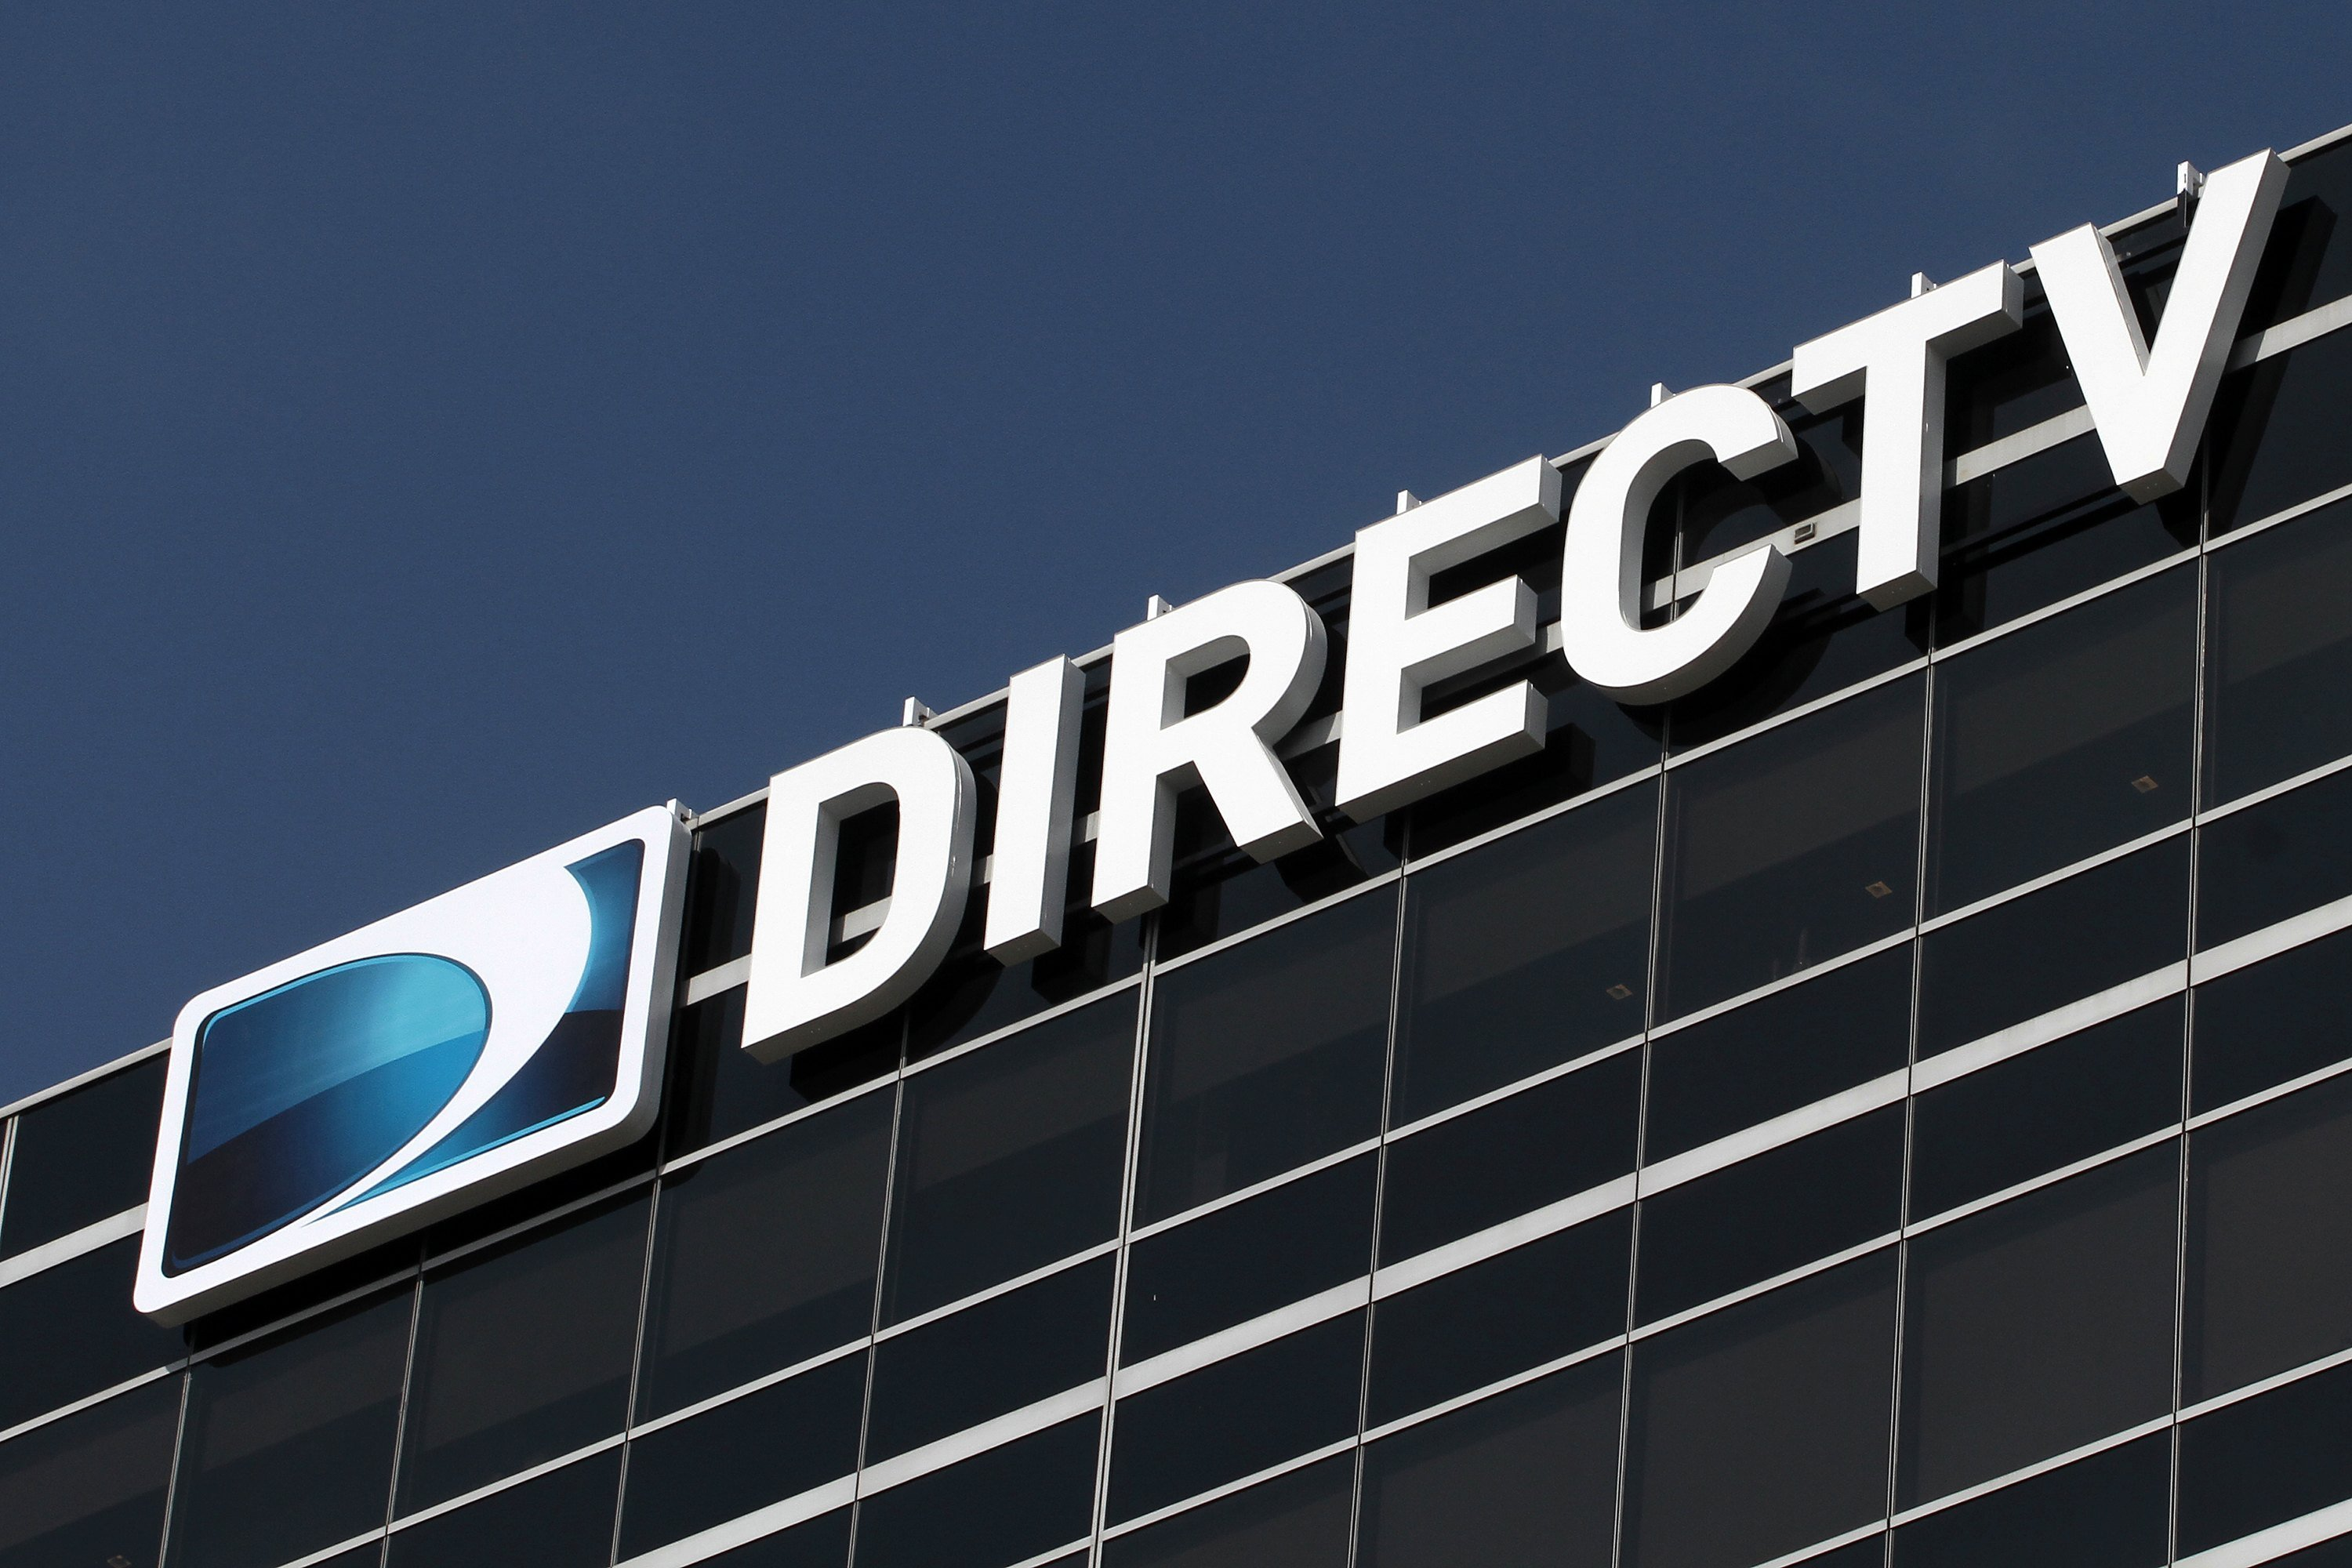 Peaceably Decline Business Login Business App Directv Pay Tv Subscribers Came Despite Nearly New Accountson Directv Now Sap Tv Business Wsj Directv inspiration Directv For Business